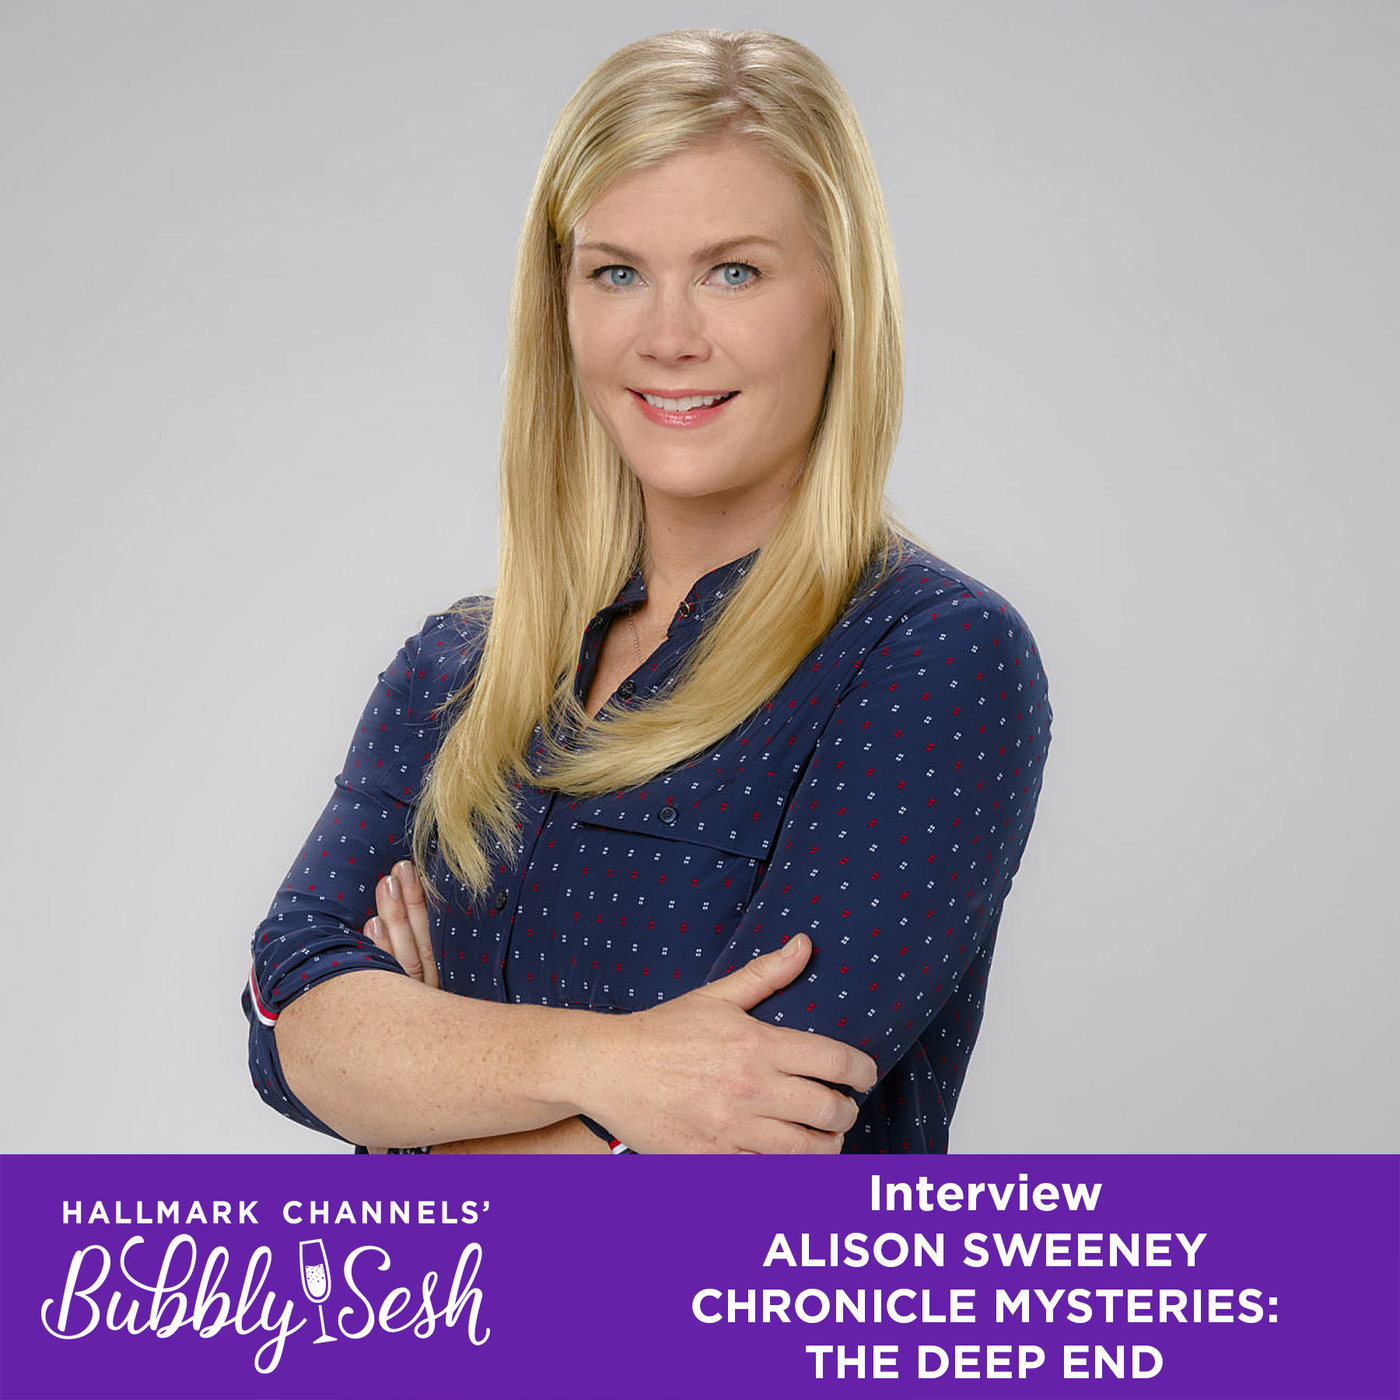 Alison Sweeney Interview: Chronicle Mysteries: The Deep End